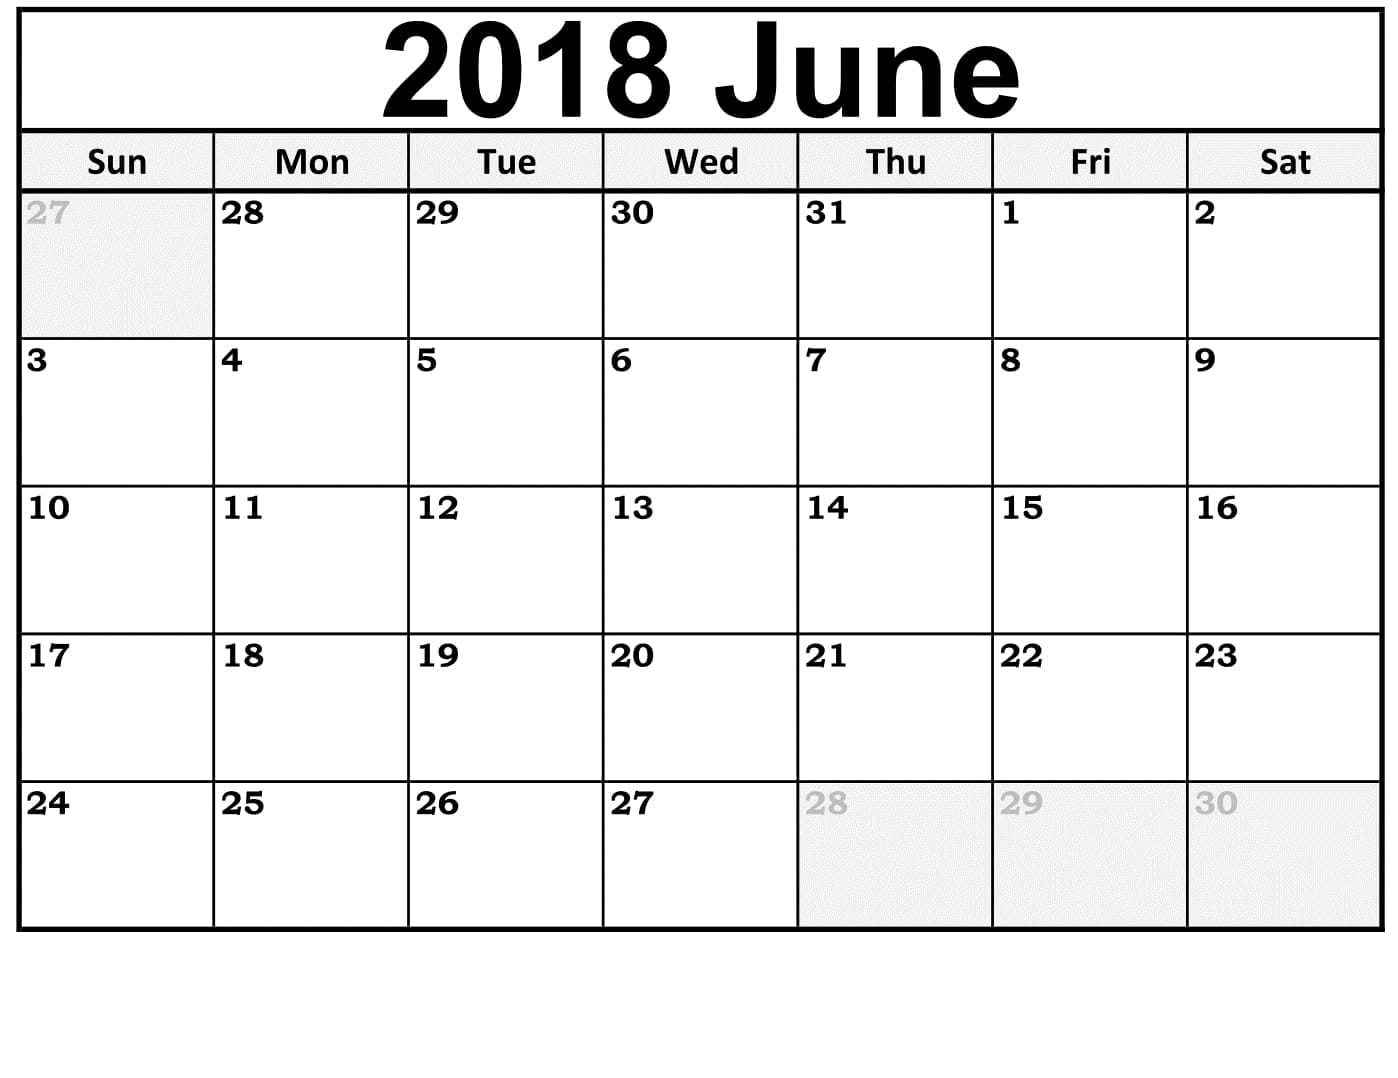 photograph relating to June Printable Calendar identified as Printable Calendar June 2018 Term,Excel And Pdf Layout